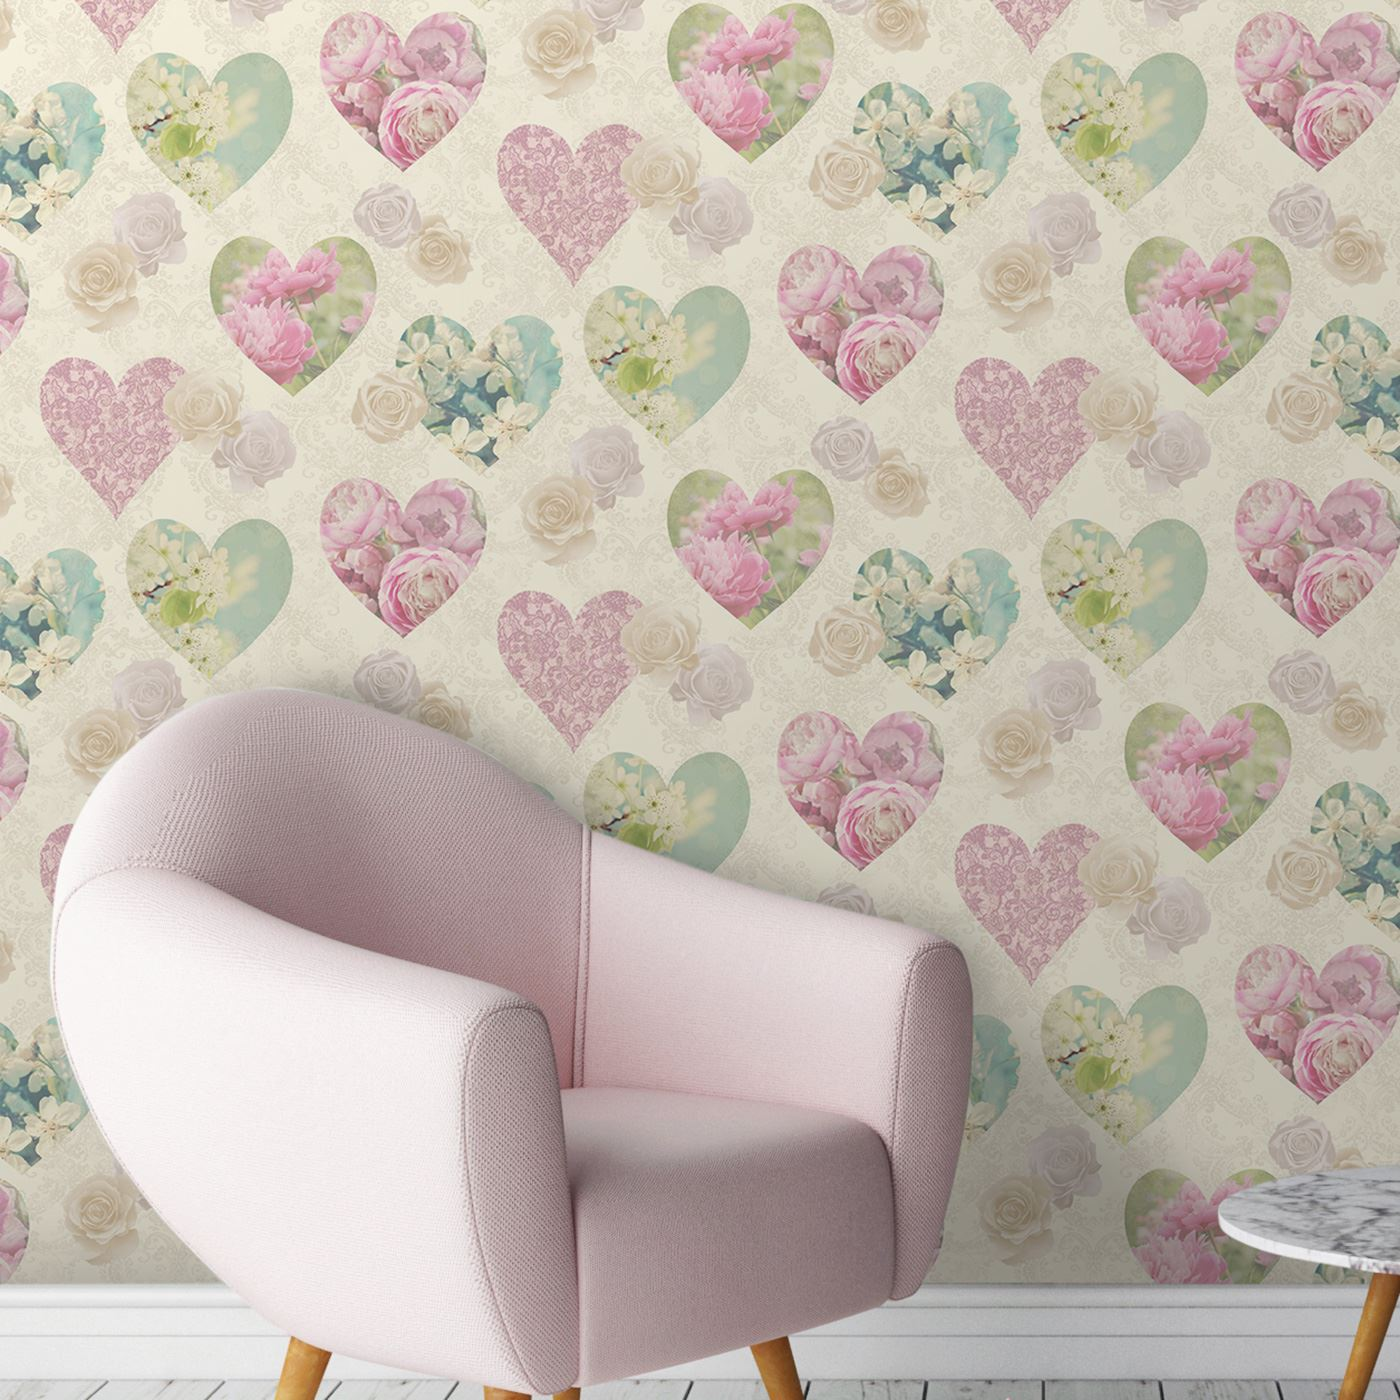 Designer Wallpaper Ideas Photos: SHABBY CHIC FLORAL WALLPAPER IN VARIOUS DESIGNS WALL DECOR